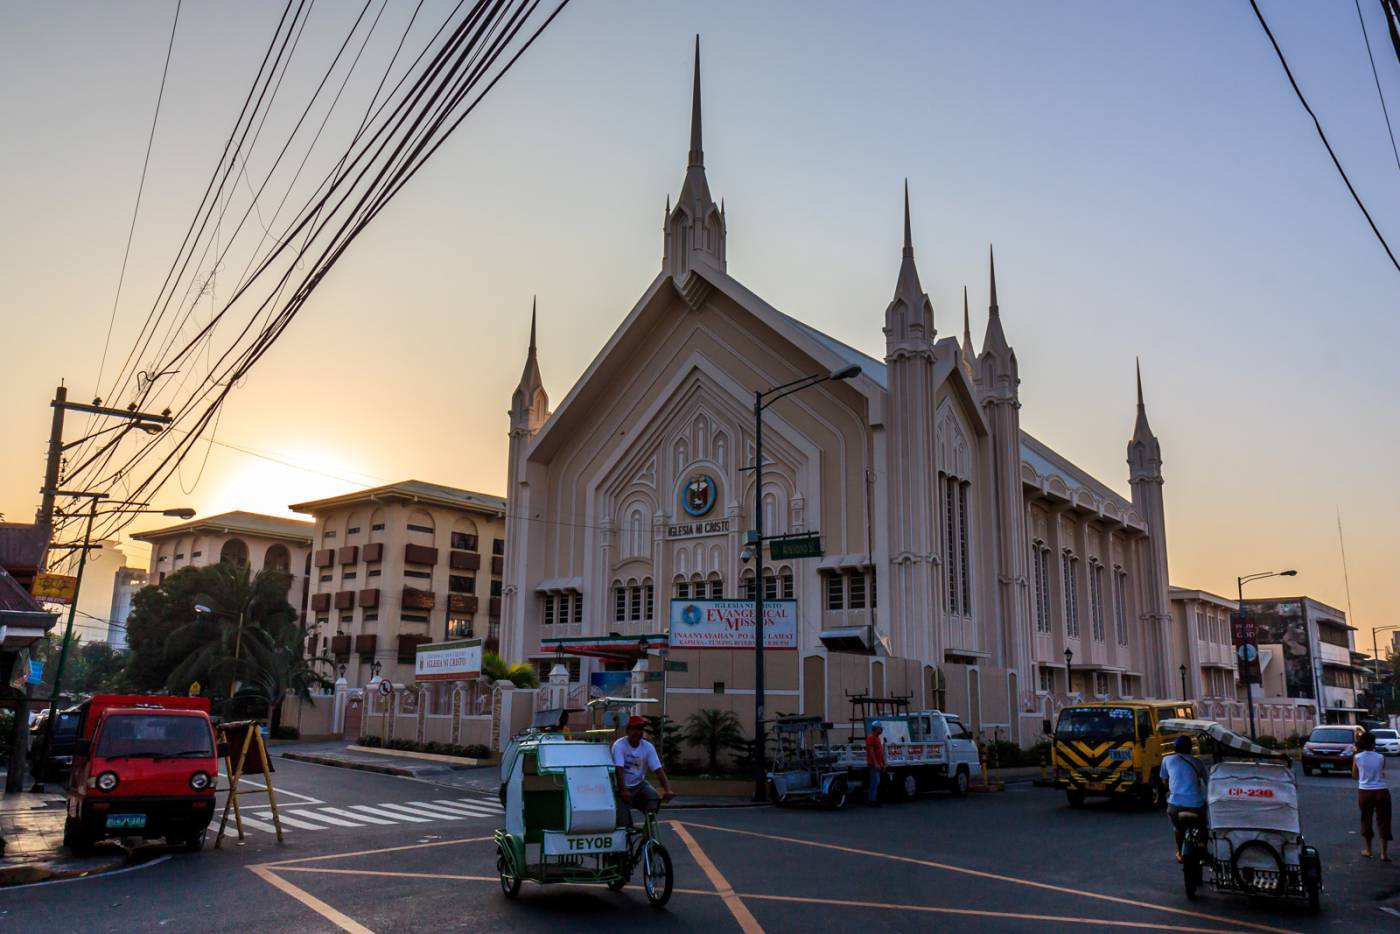 Church of Christ churches, like this one in Manila, are all over the Philippines